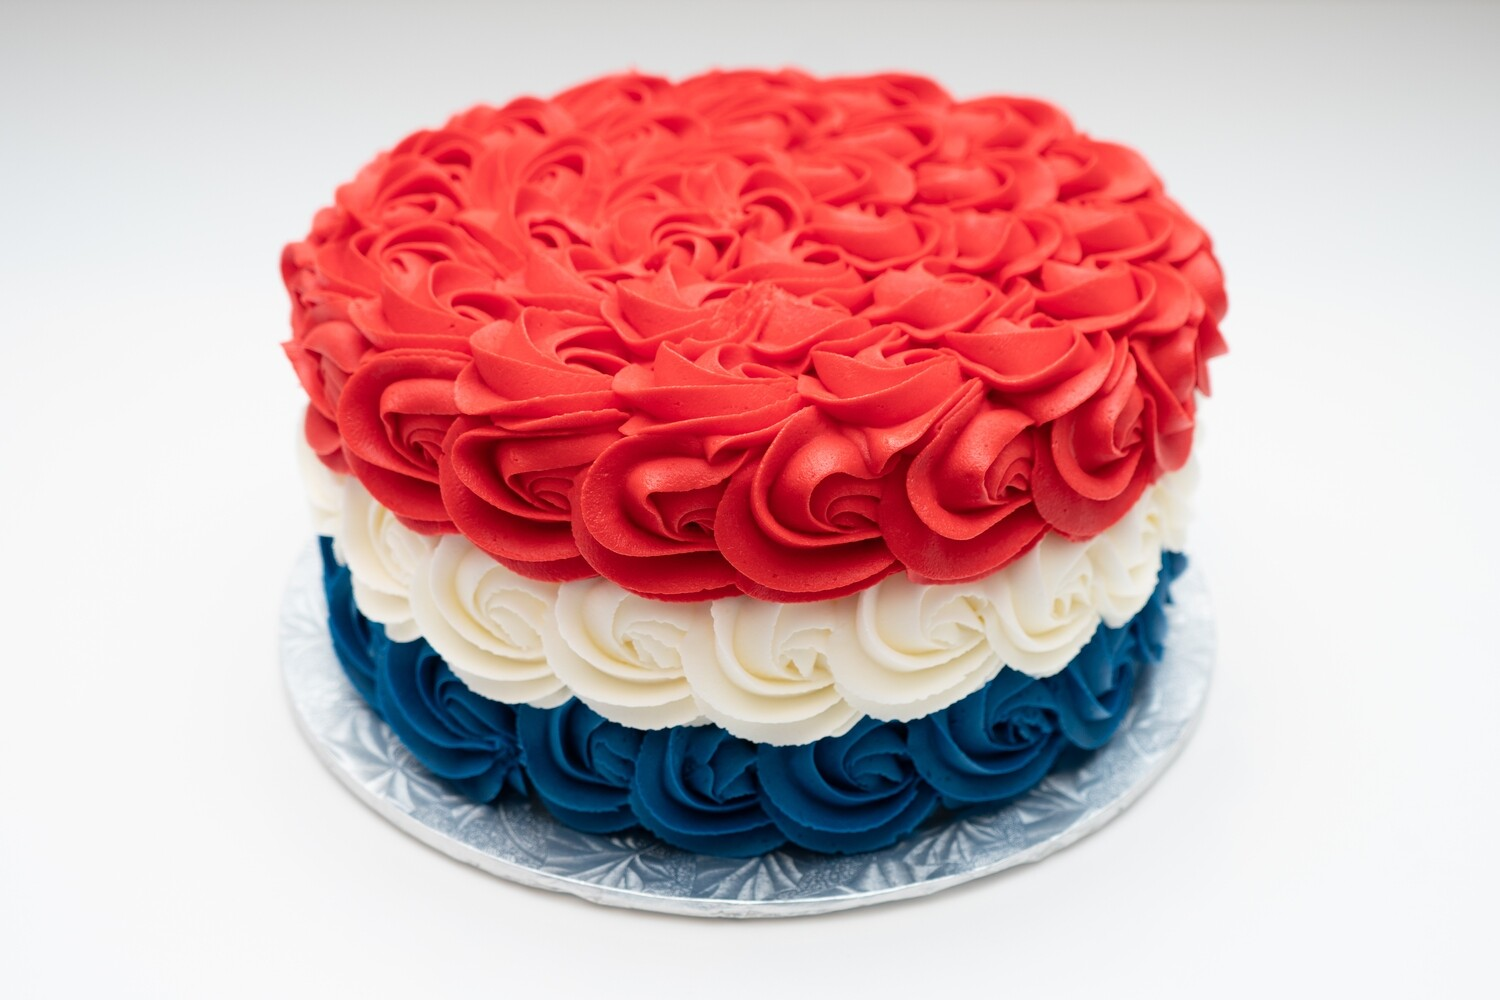 Red, White, and Blue Rosette Cake